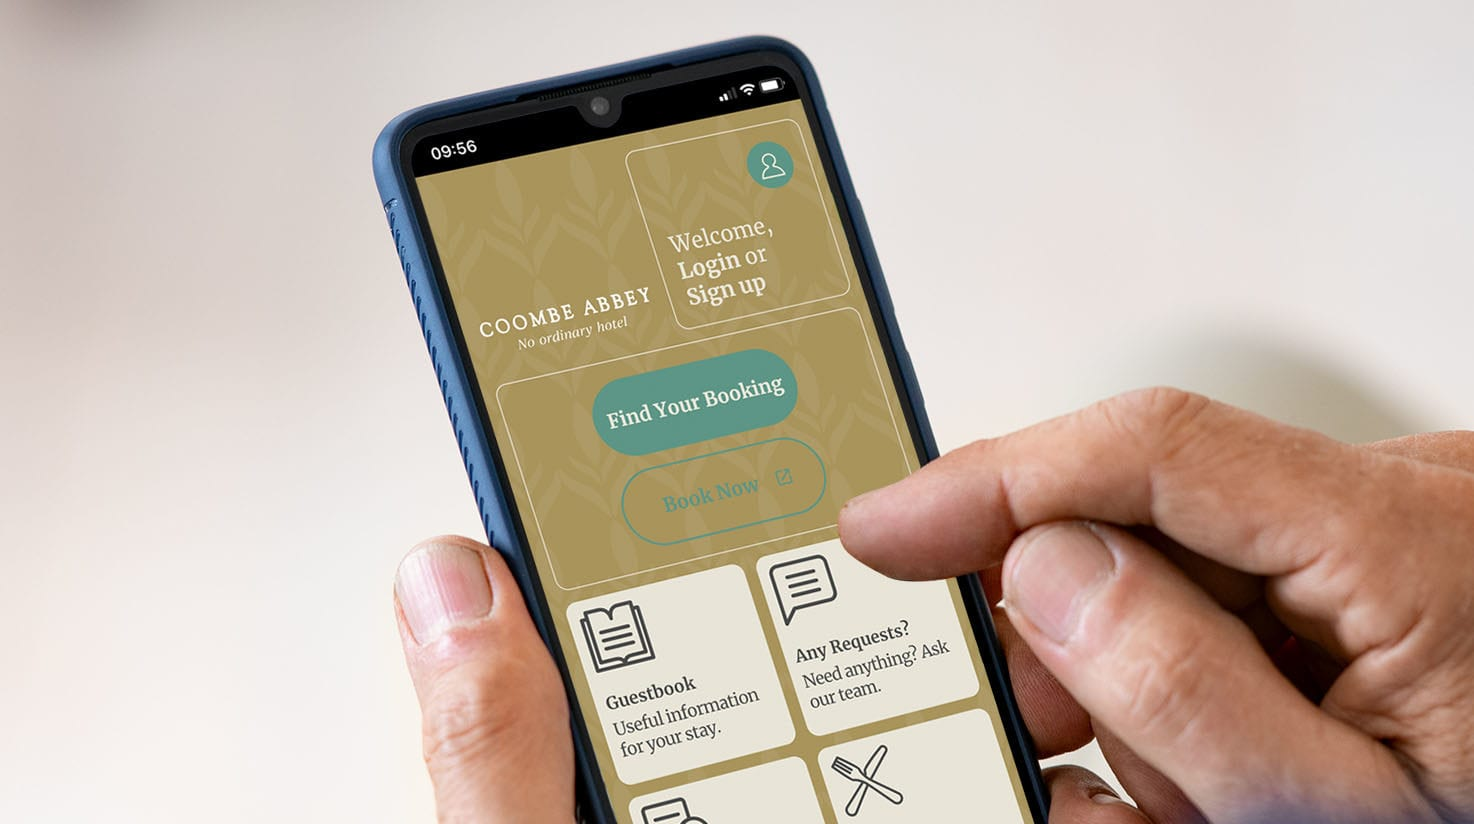 Download Coombe Abbey's App